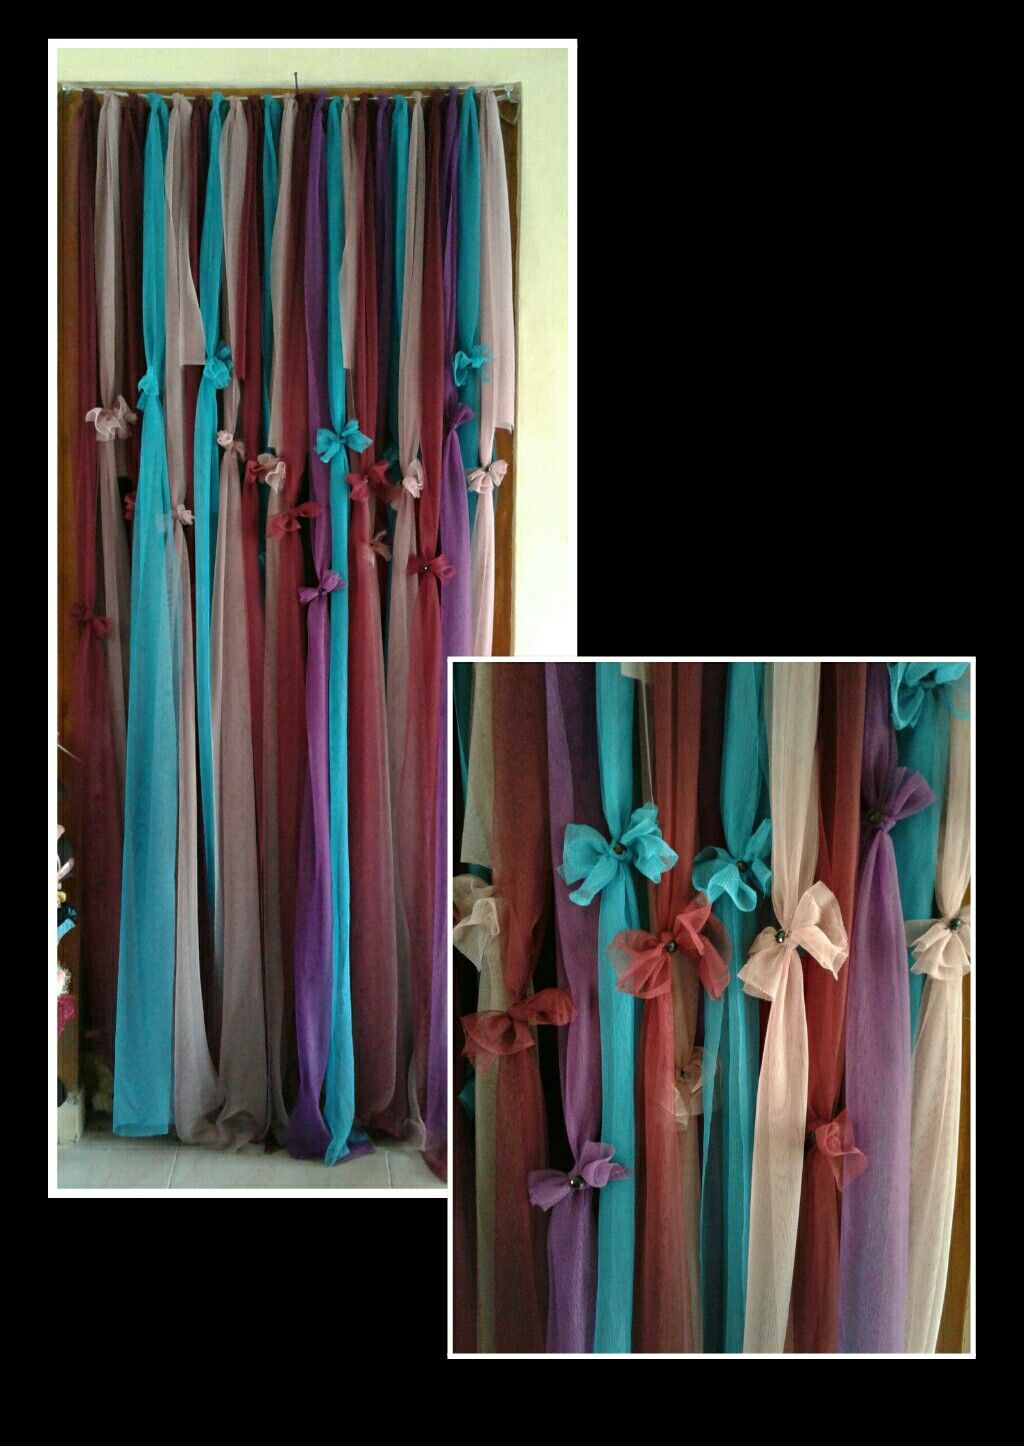 Gambar Korden Korden Dari Kain Tyle Perca My Tailor Boutique Decor